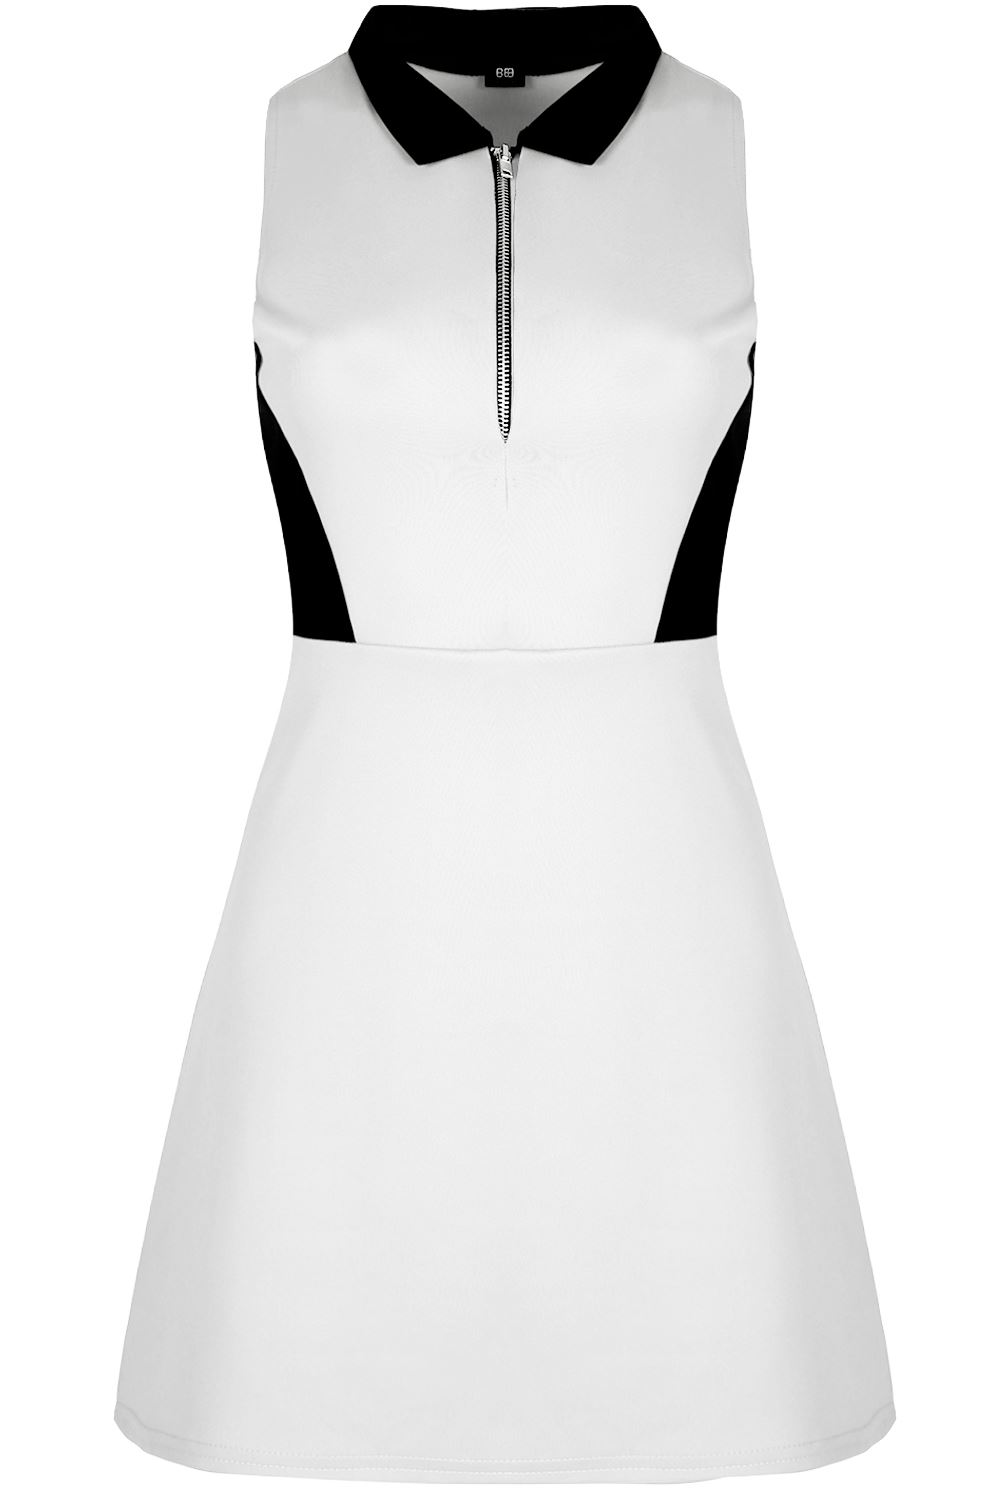 Womens-Casual-Party-Silver-Zip-Up-Contrast-Sleeveless-Skater-Dress-Plus-Sizes thumbnail 5